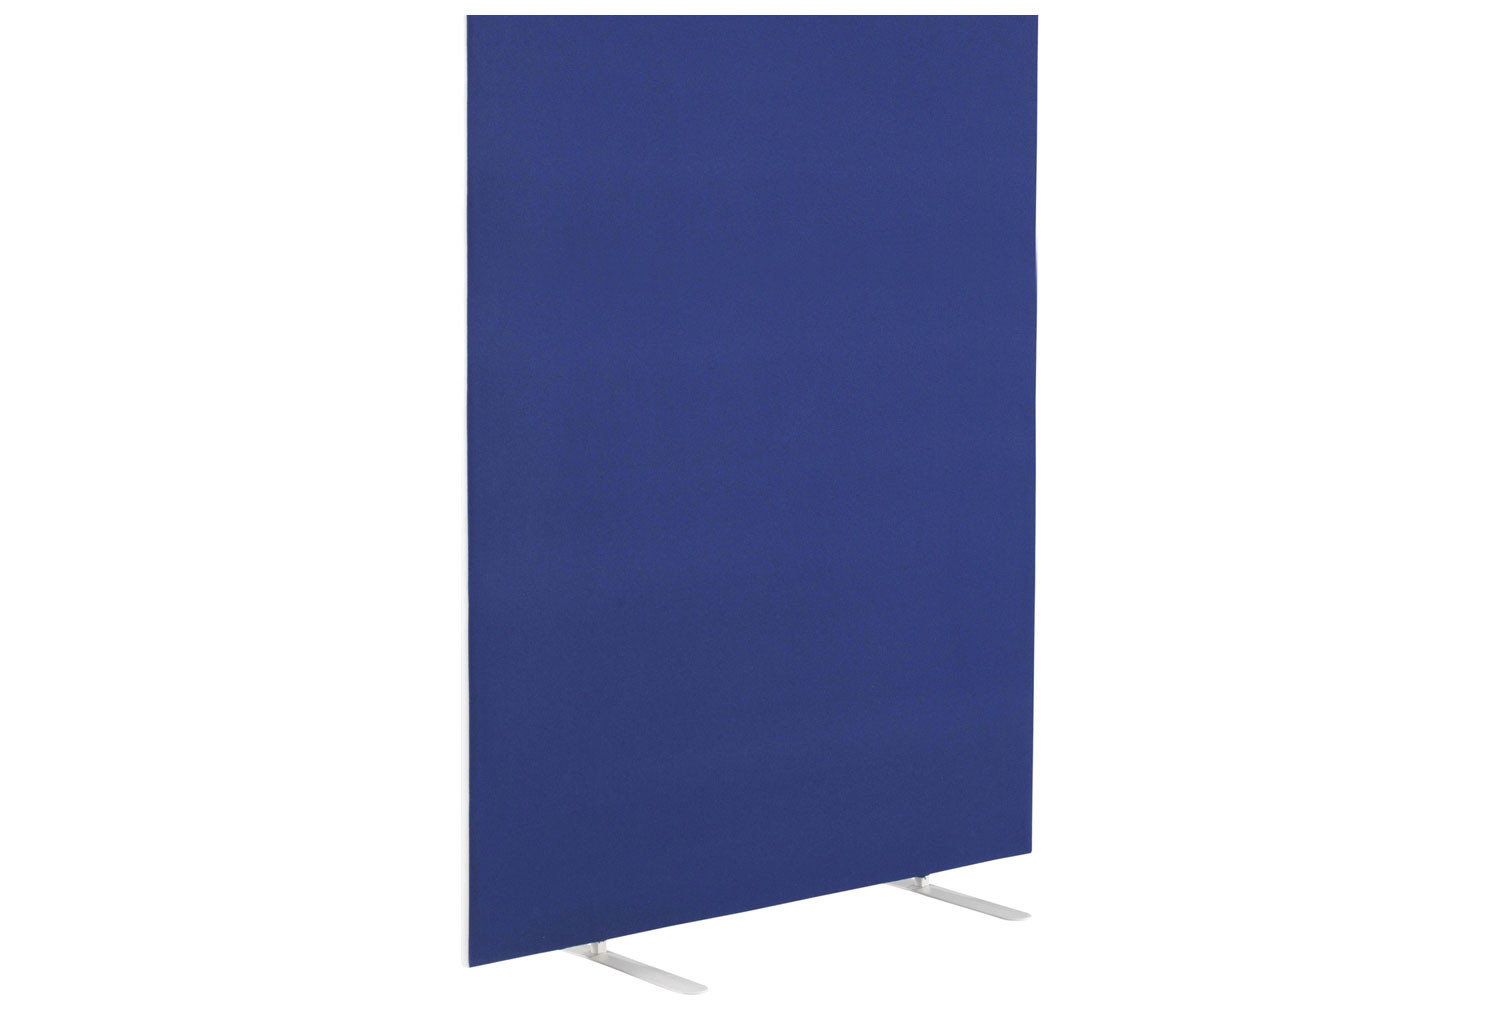 Whist Economy Floor Standing Screens